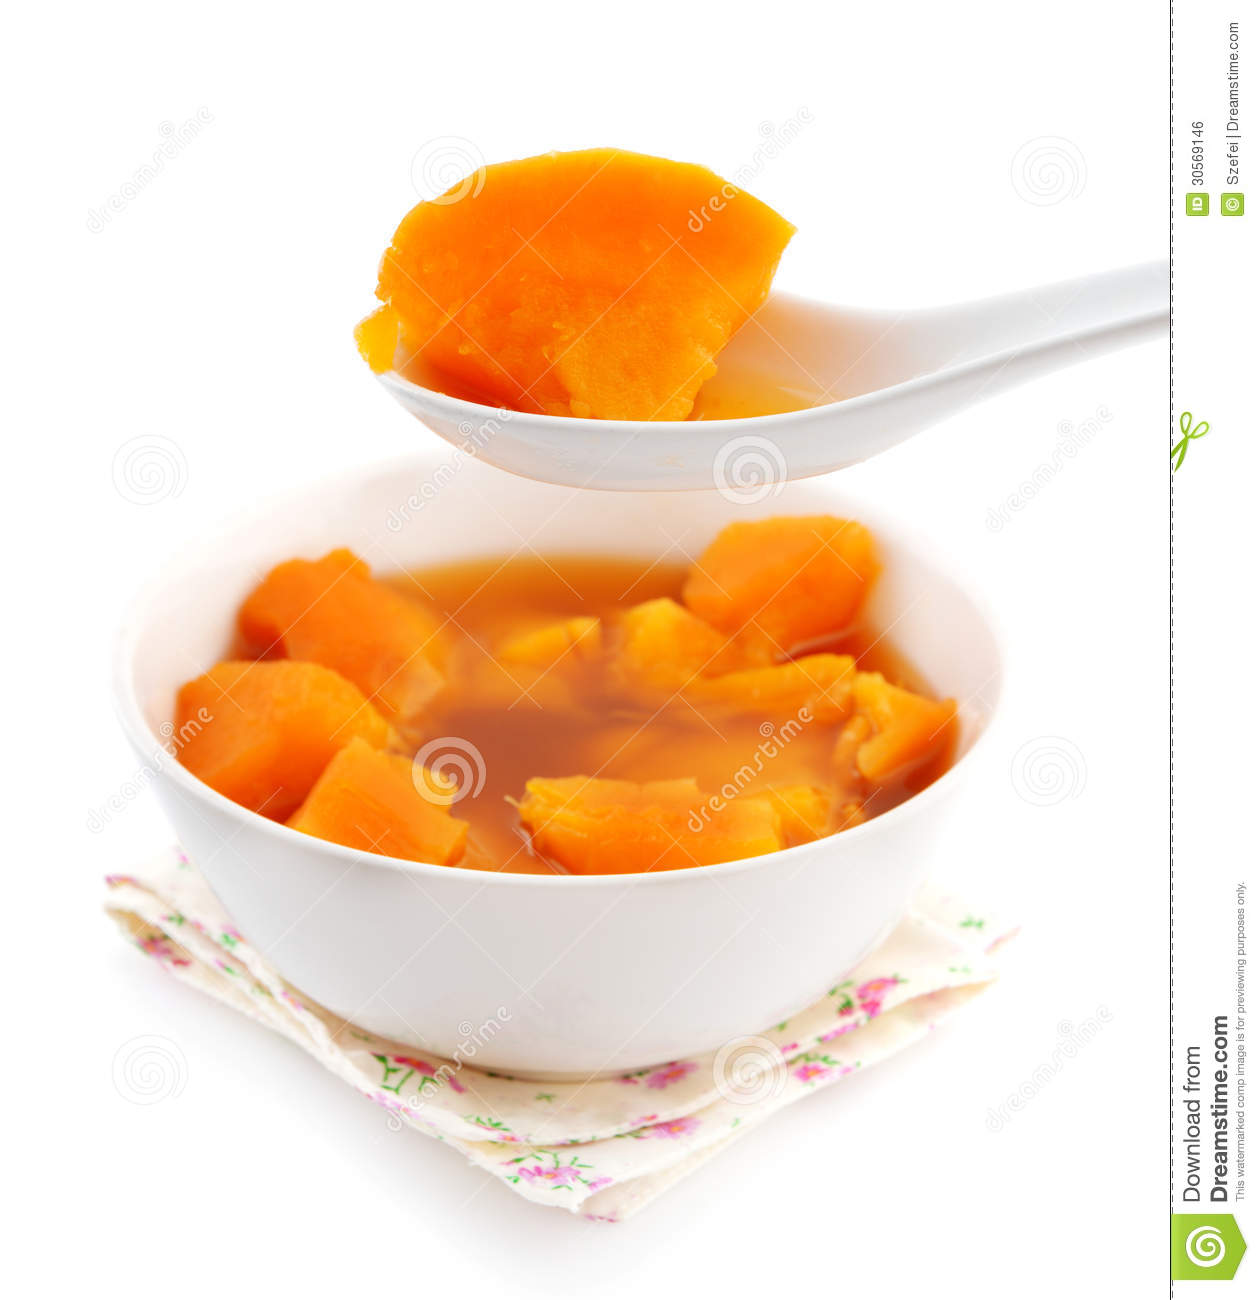 Bowl of sweet potato soup.